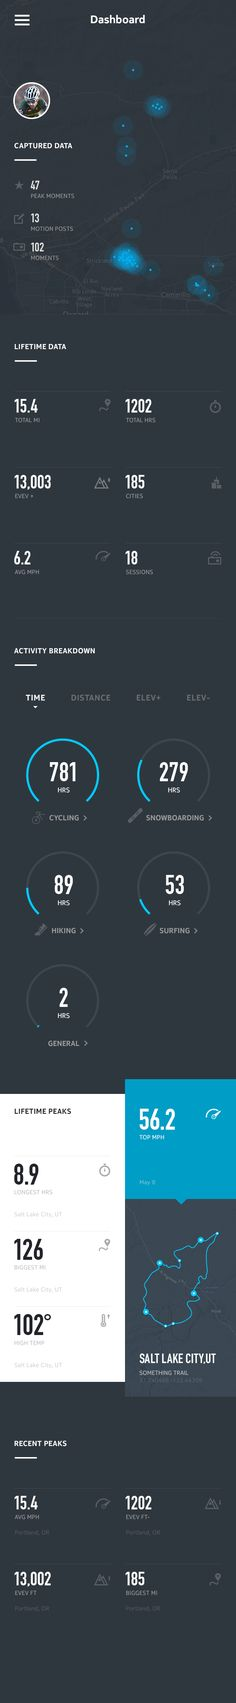 Dashboard #UI